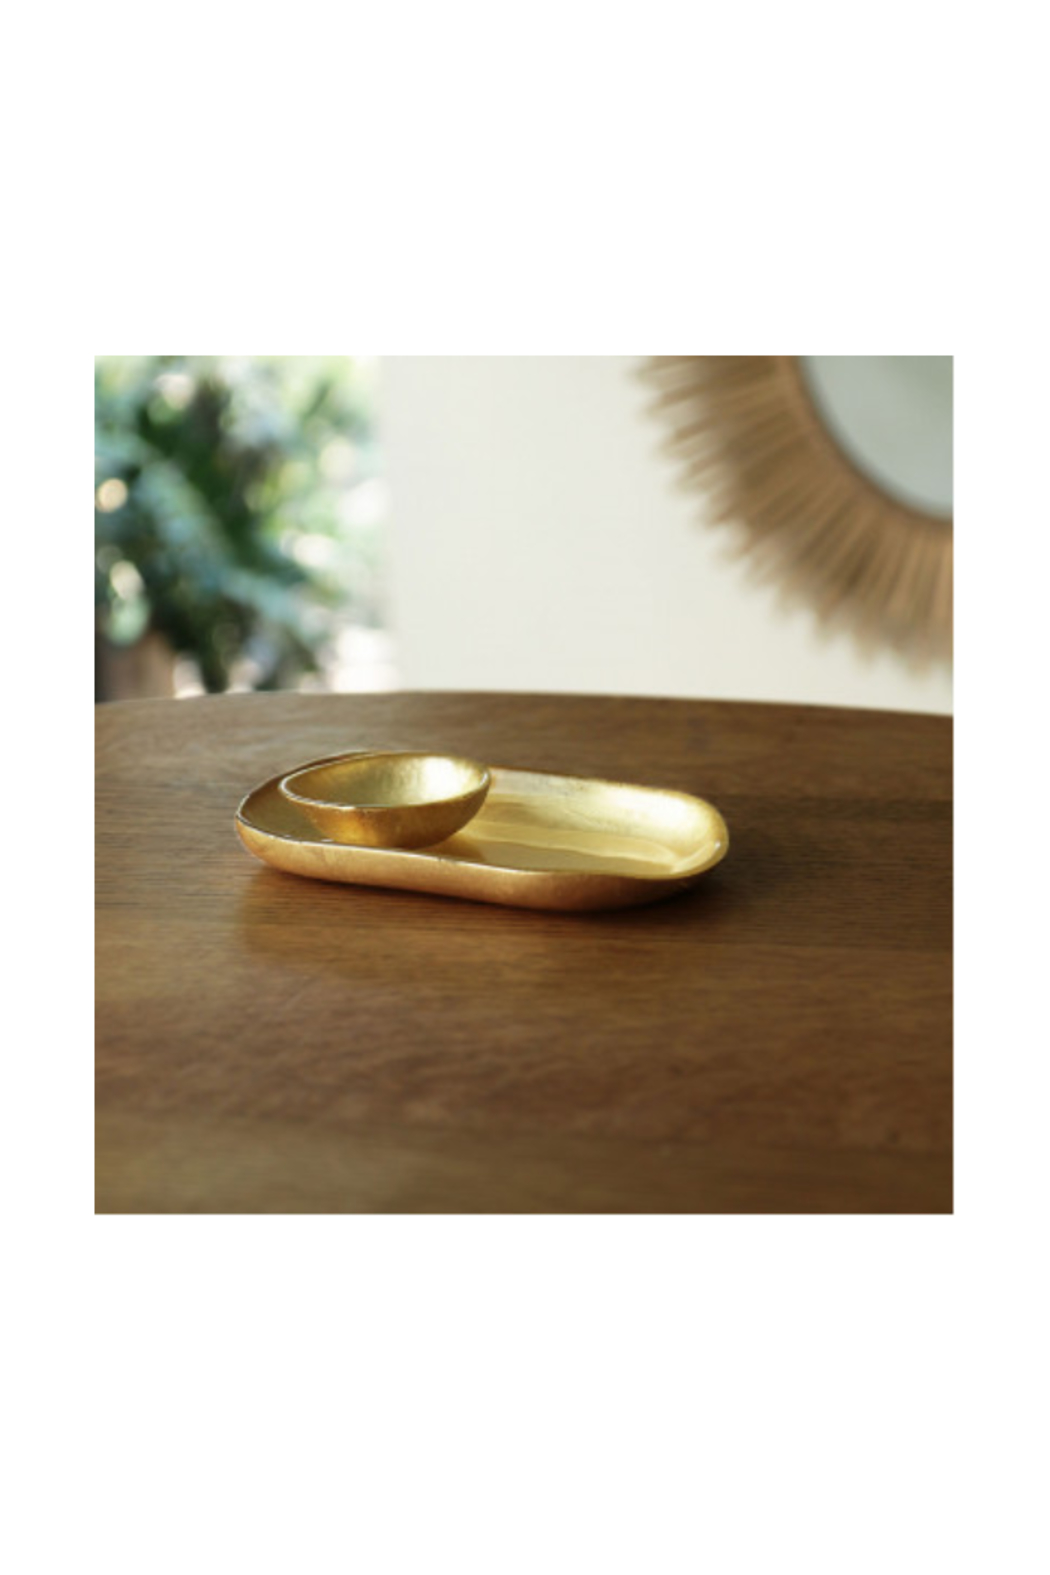 The Birds Nest GLASS OVAL PLATTER WITH MINI BOWL-GOLD FOIL - Main Image